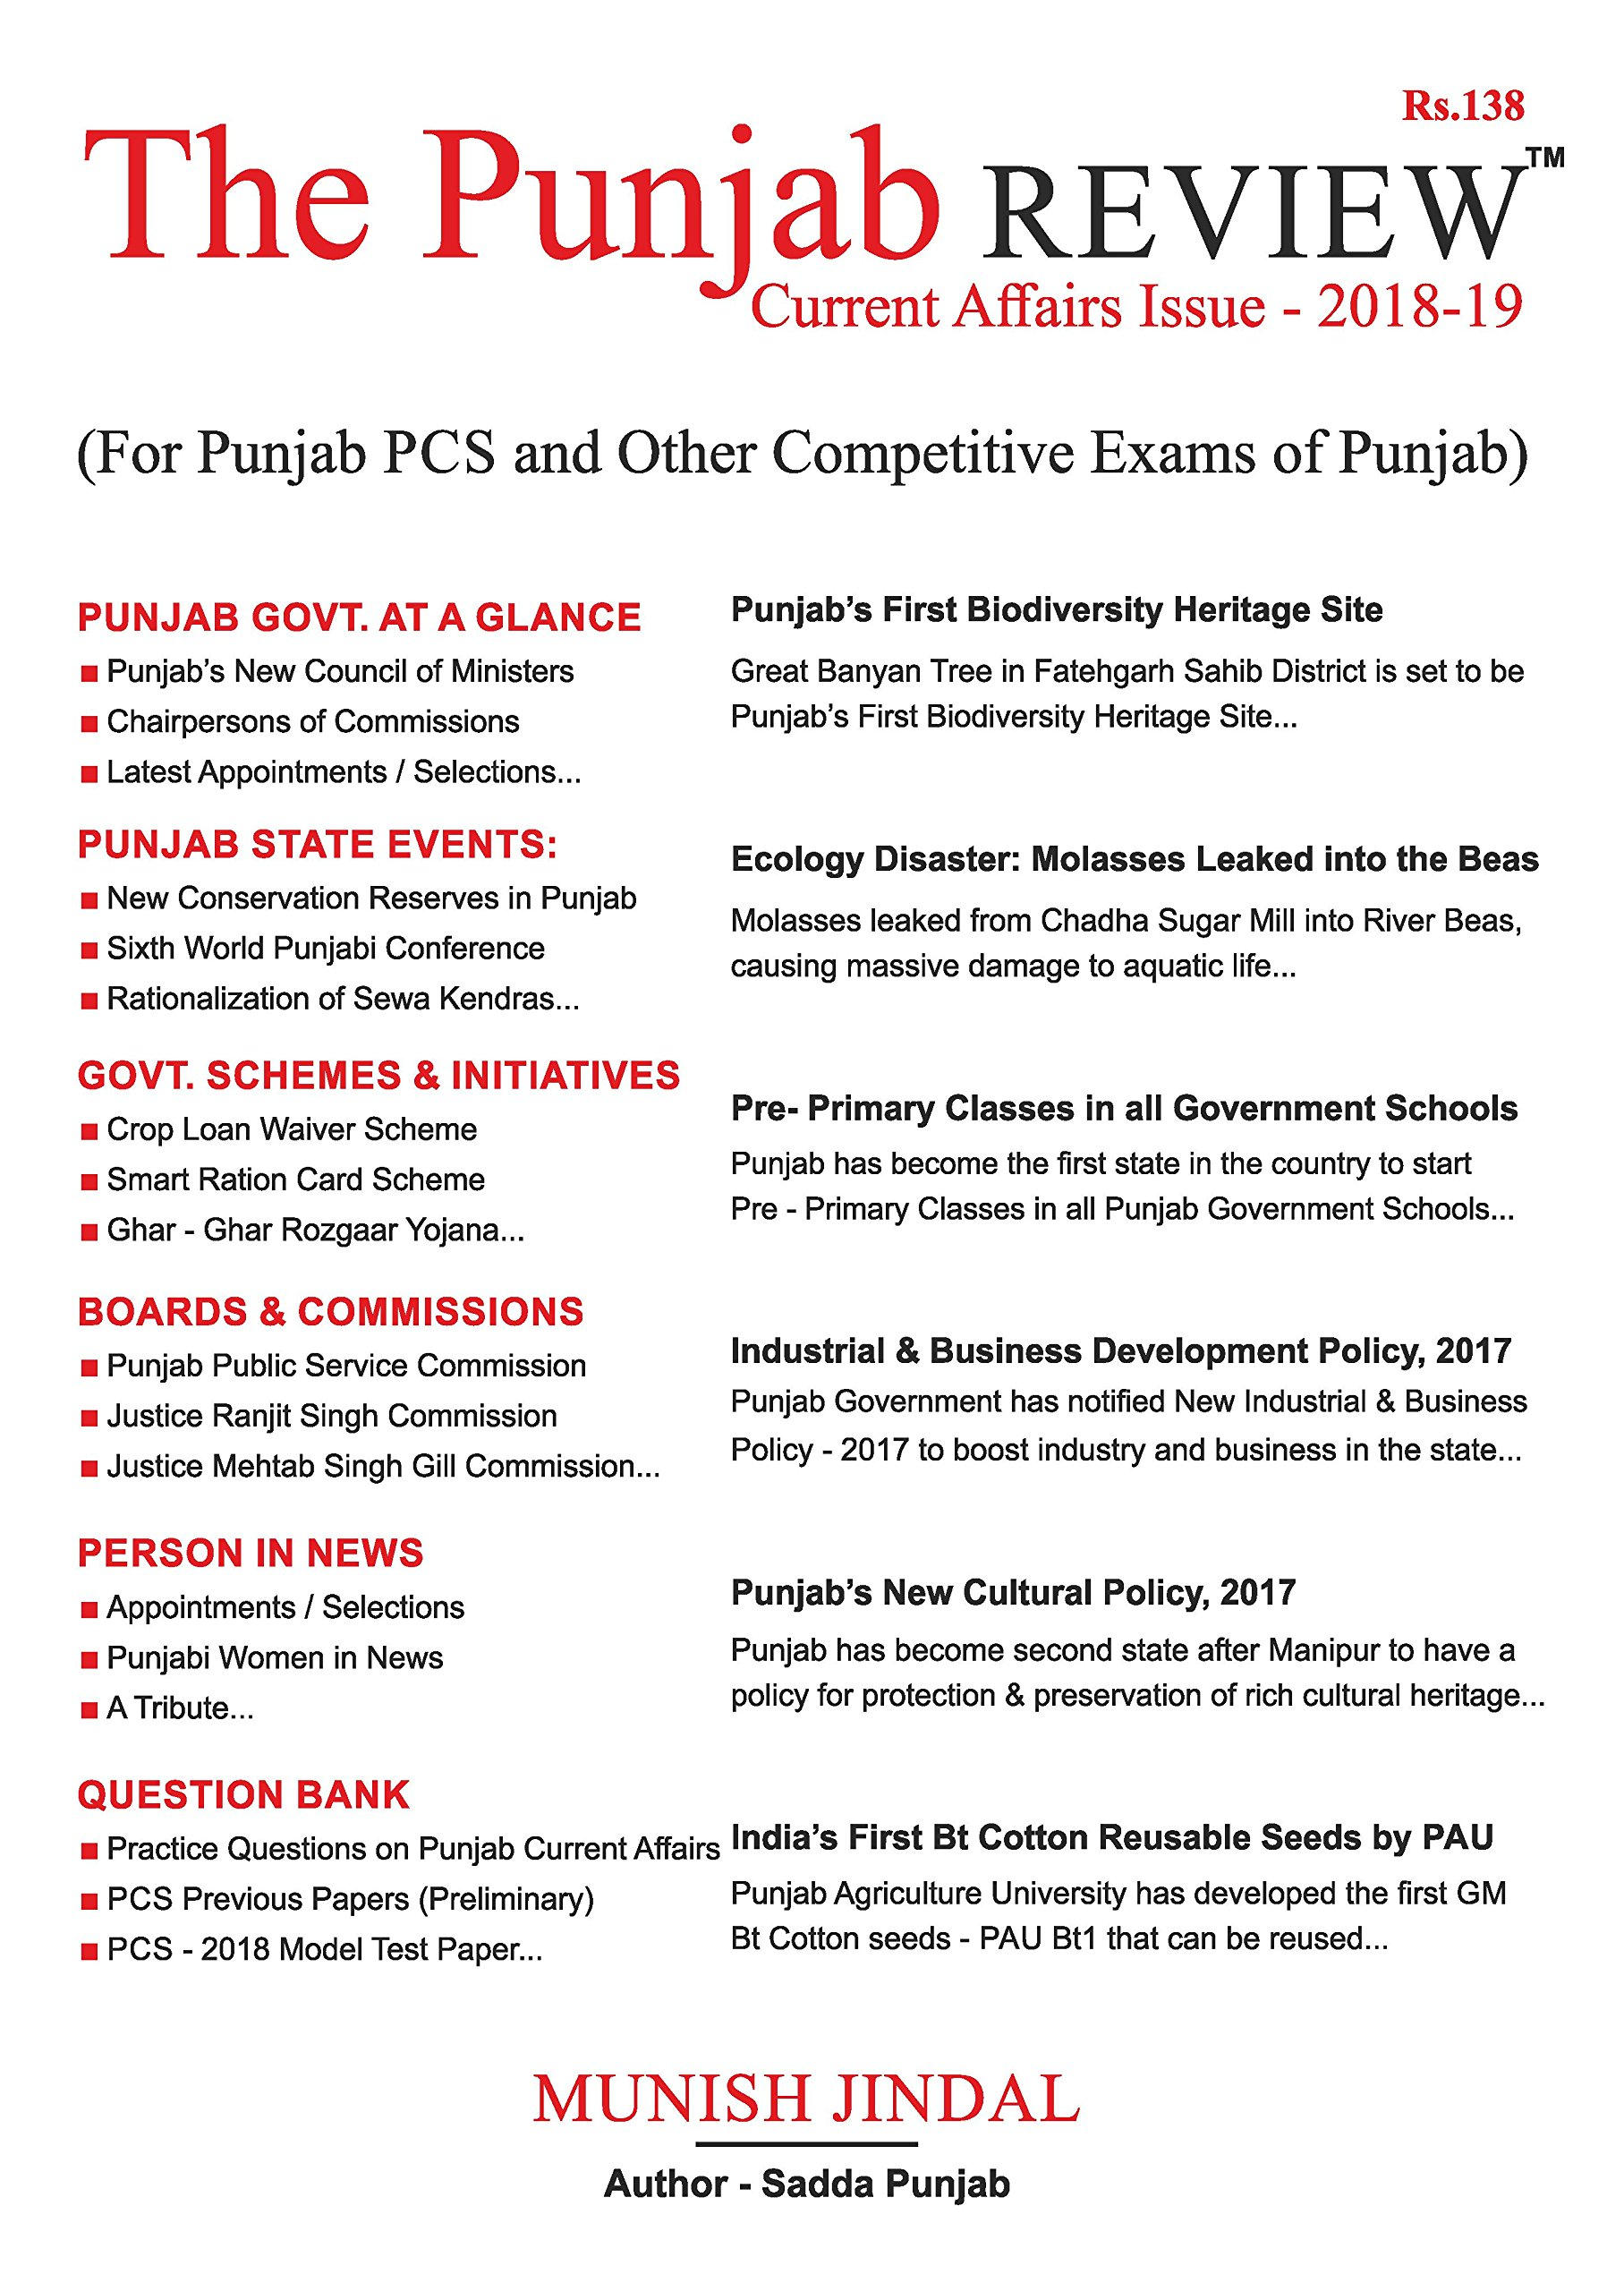 Buy THE PUNJAB REVIEW Book Online at Low Prices in India | THE